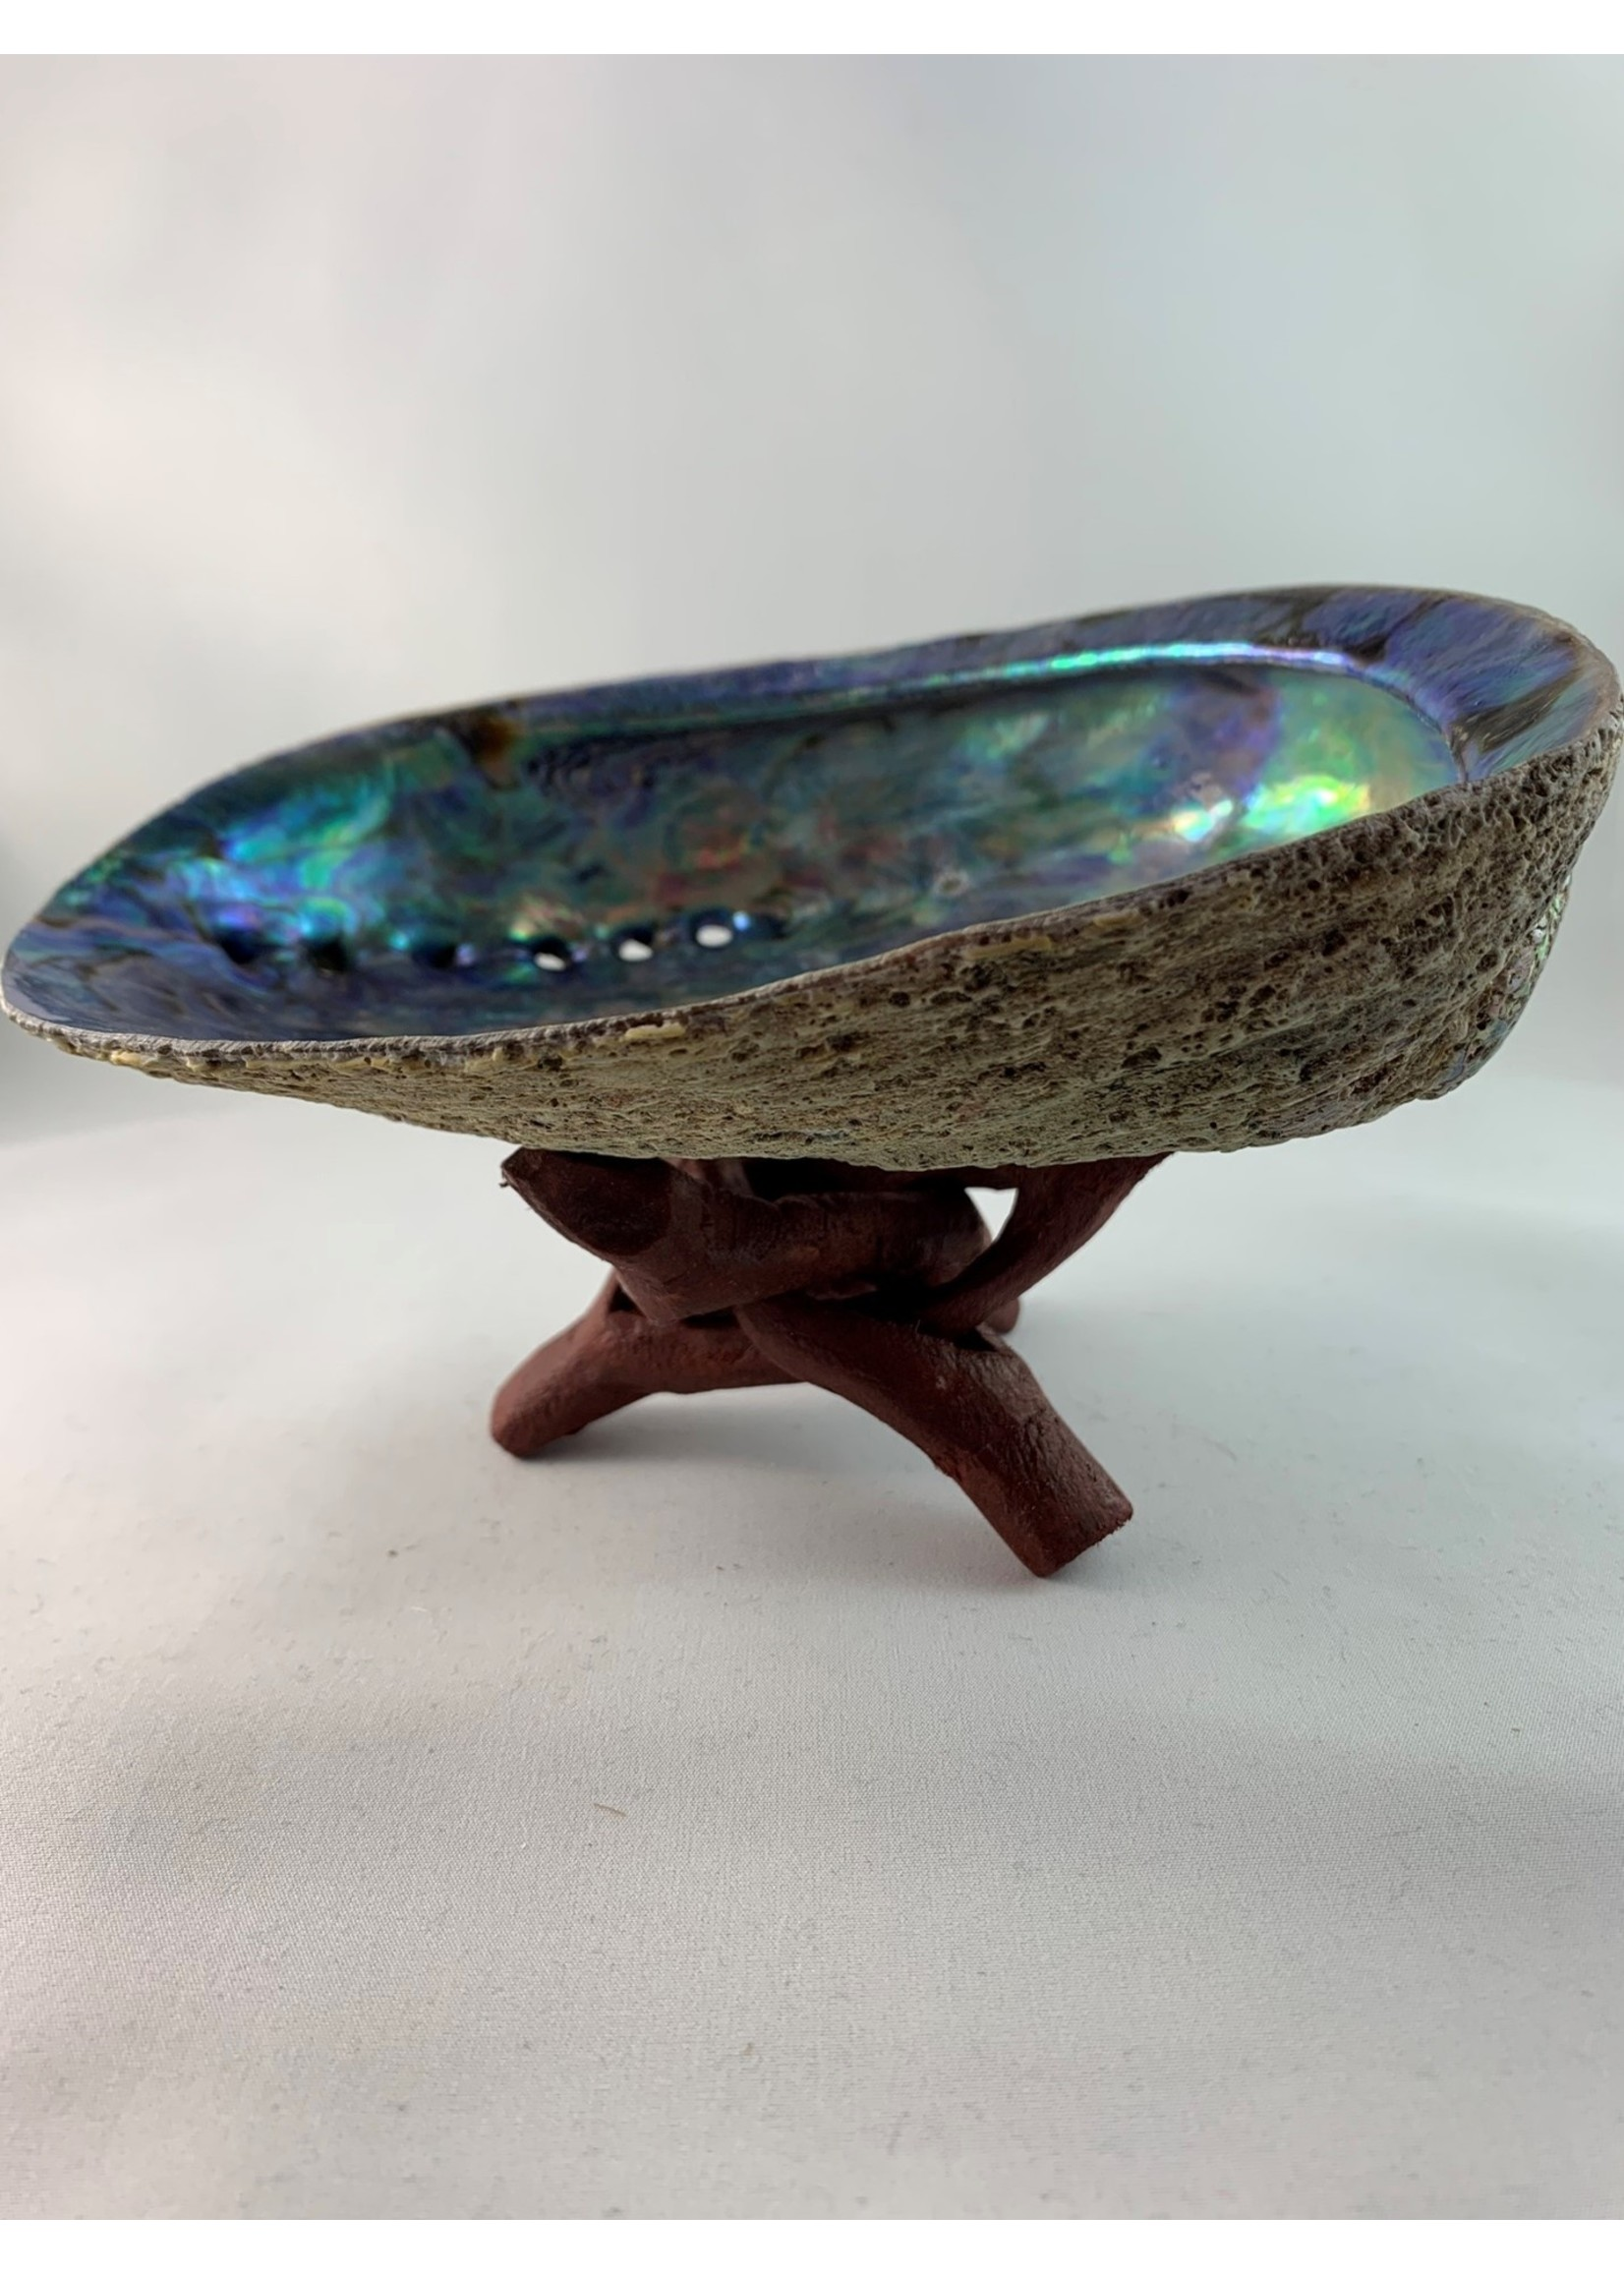 Wooden Abalone Shell Stand - 4 Inches